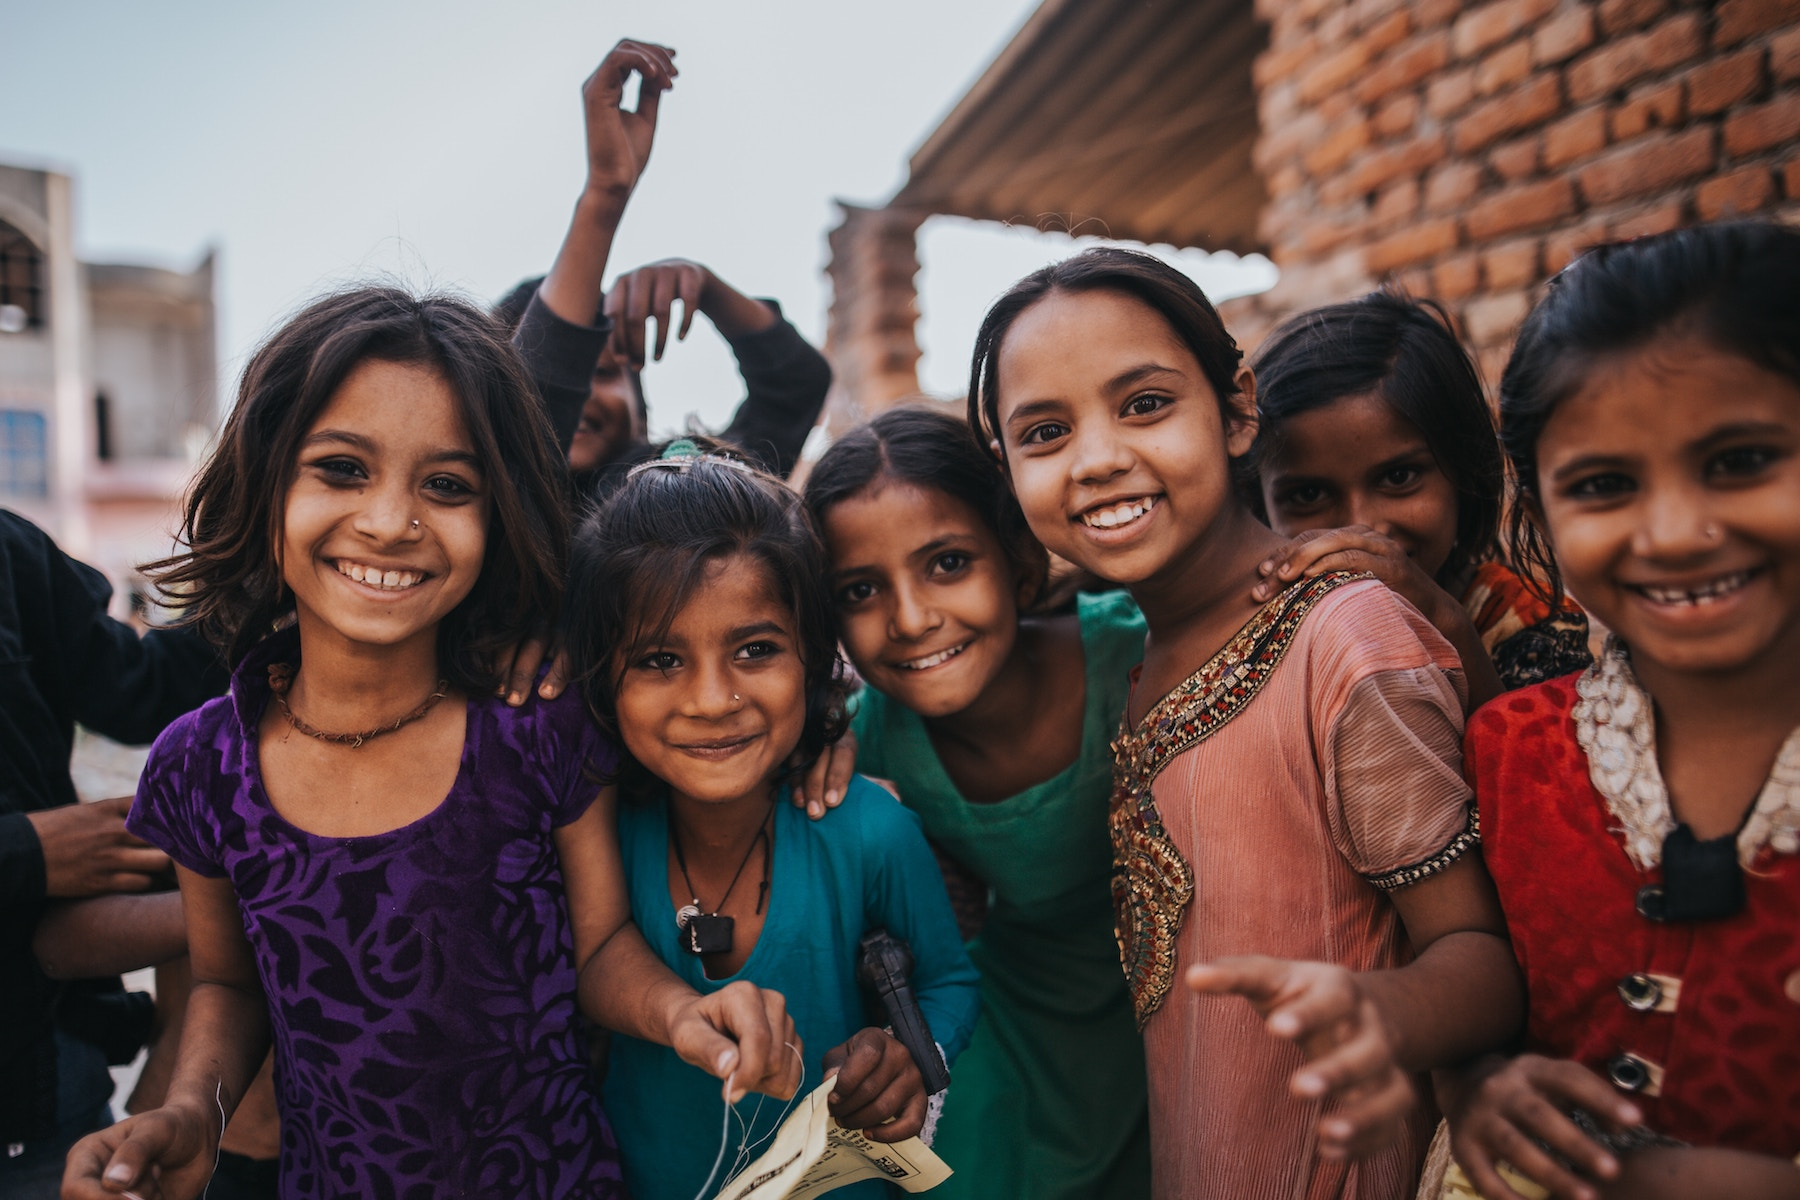 International Day of the Girl brings awareness and advocacy to the issues girls face.